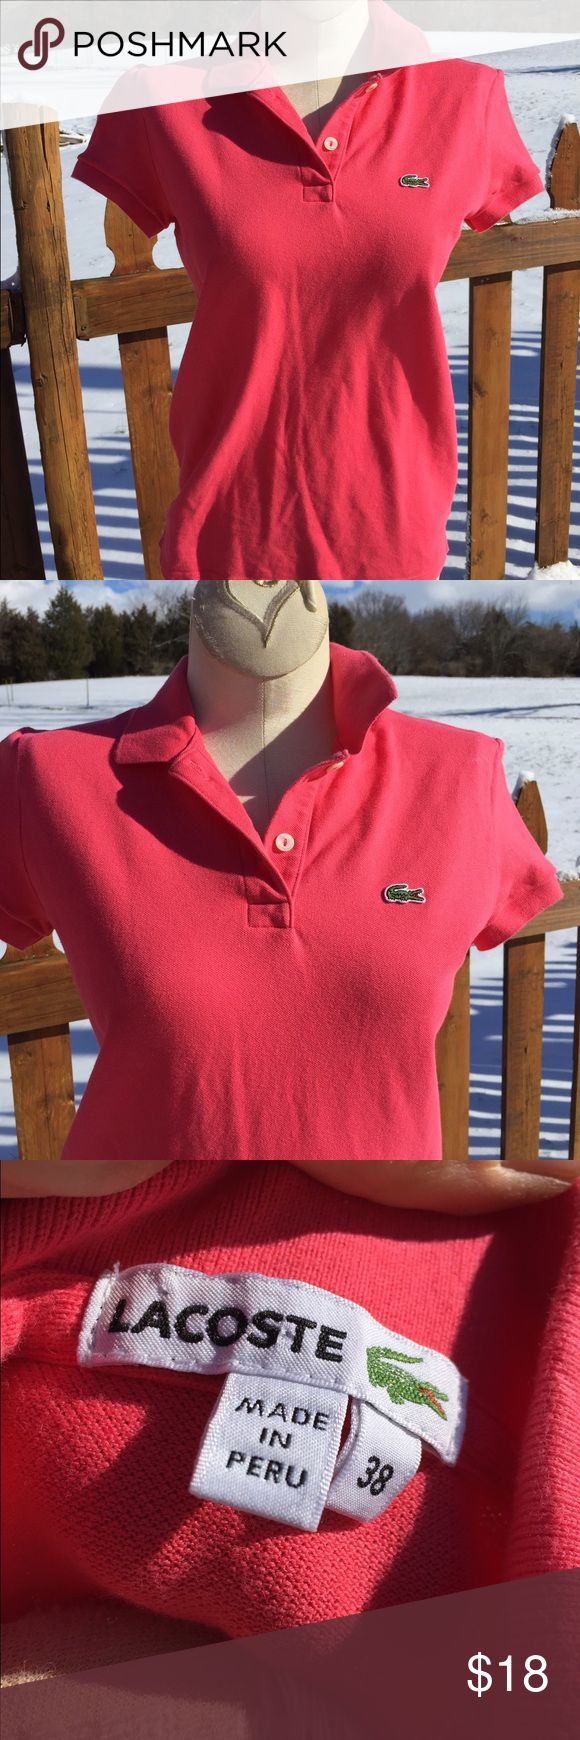 Lacoste Polo Shirt Size 38 Size 38. Super gently preowned. Be sure to view the other items in our closet. We offer both women's and Mens items in a variety of sizes. Bundle and save!! Thank you for viewing our item!! Lacoste Tops